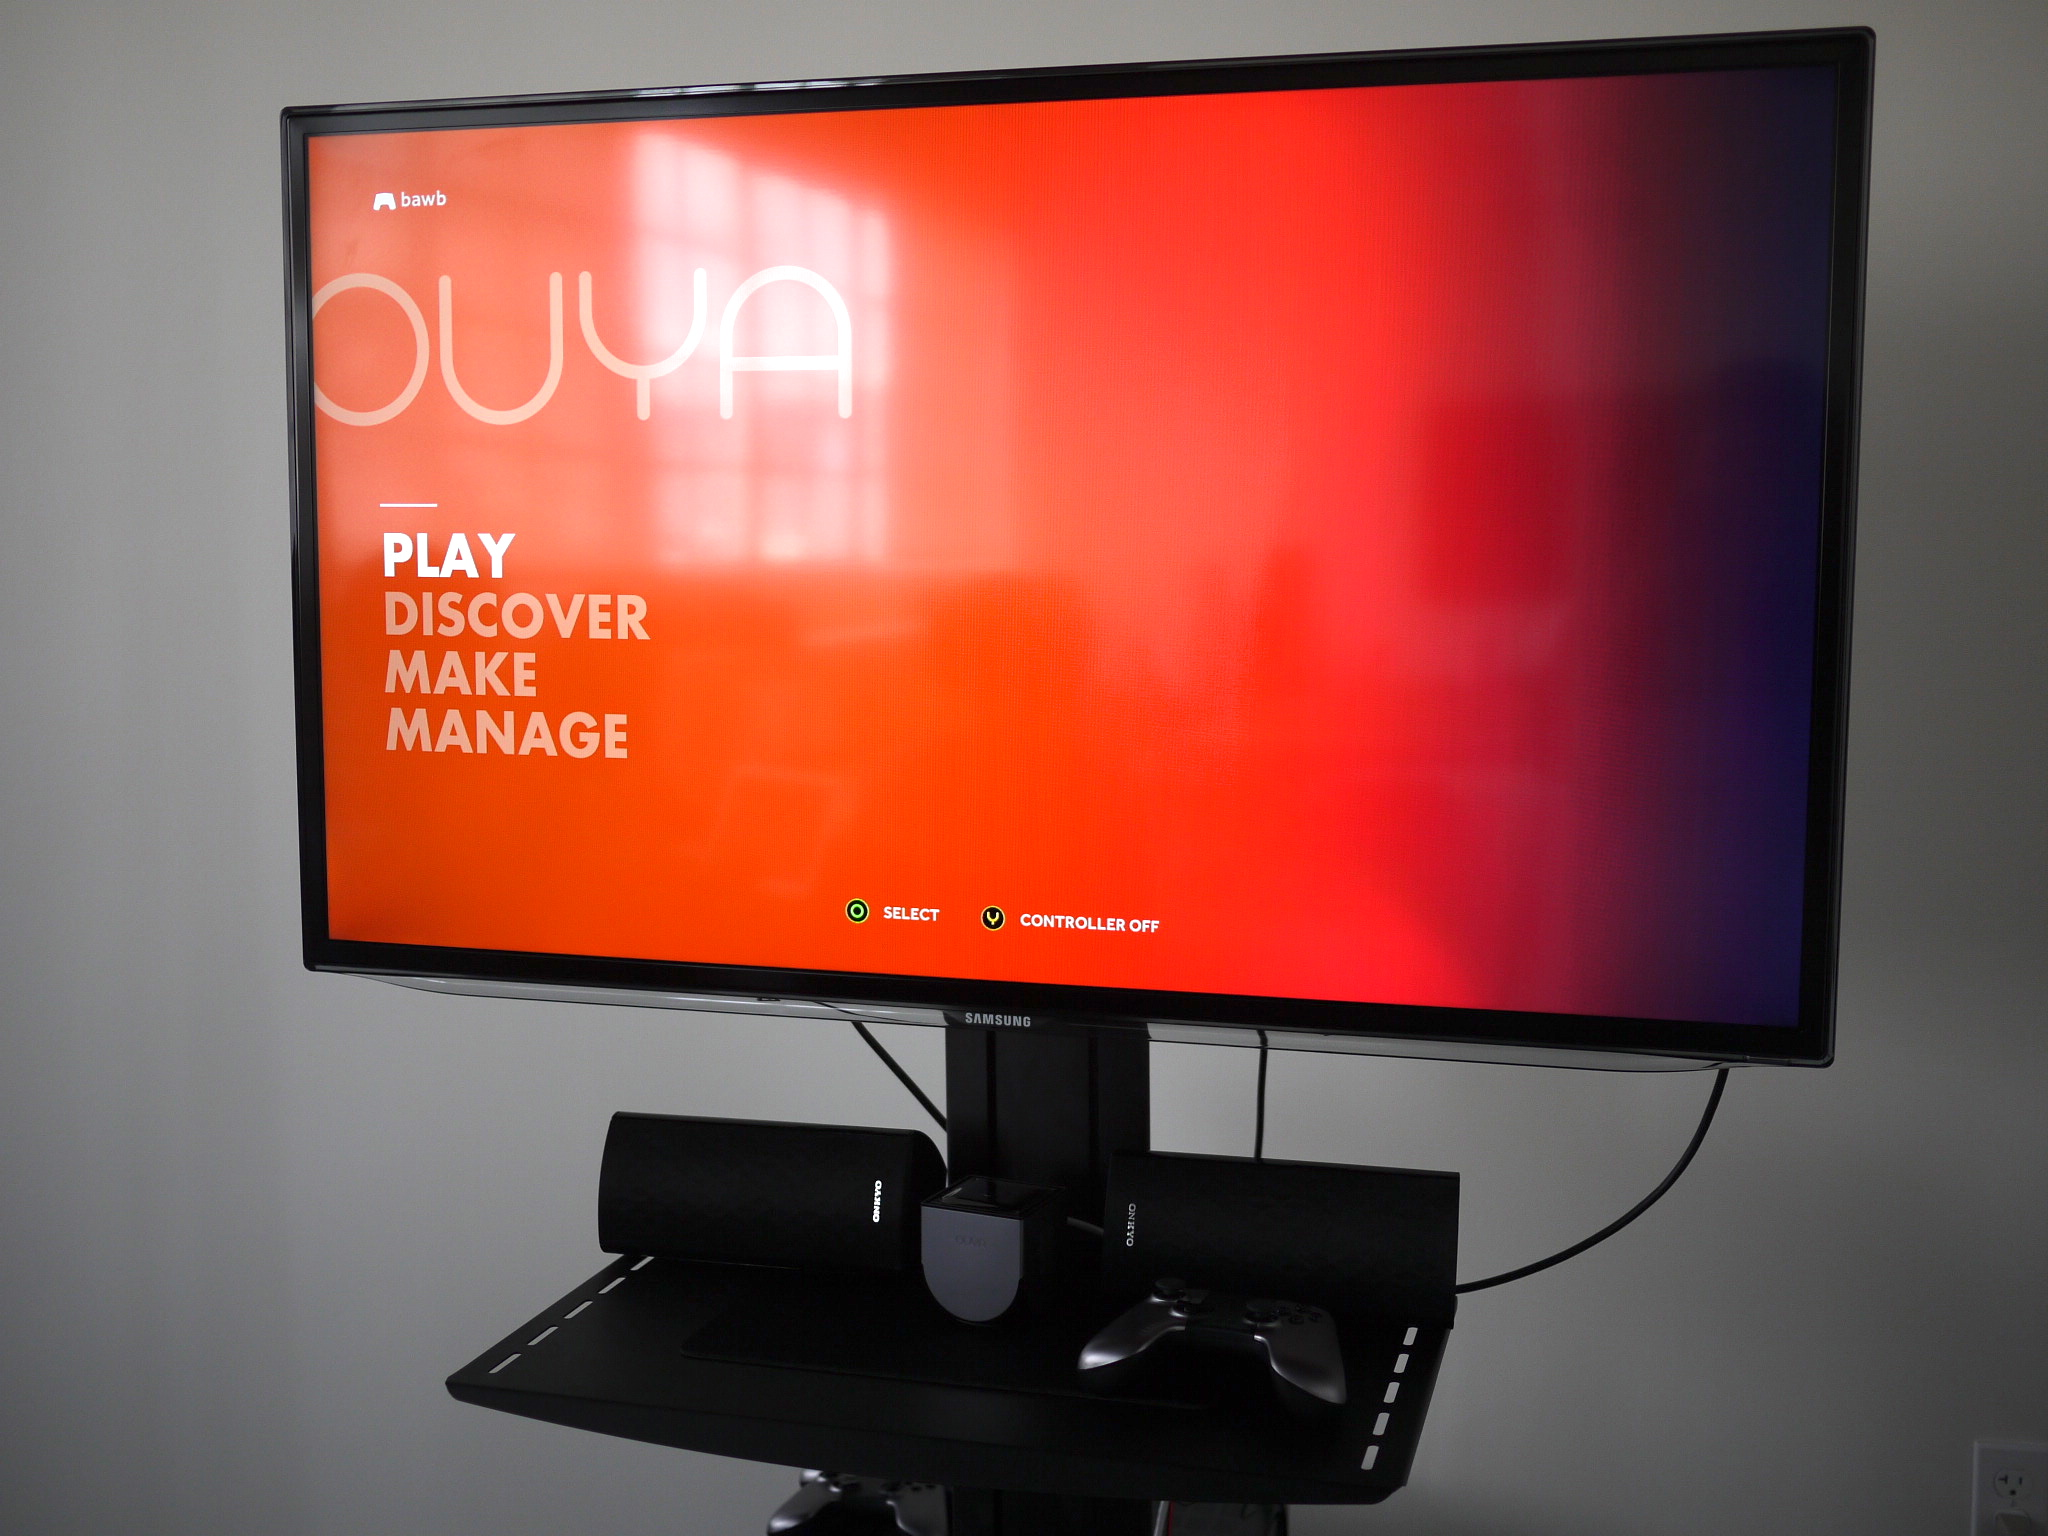 Hands-On With Ouya, the Tiny Gaming Console With Big Aspirations